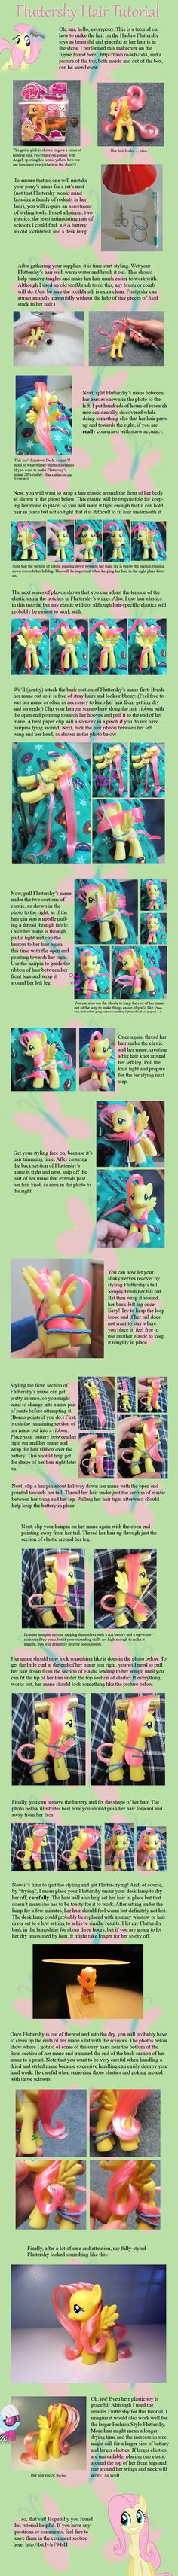 Fluttershy Hair Tutorial by ~countschlick on deviantART